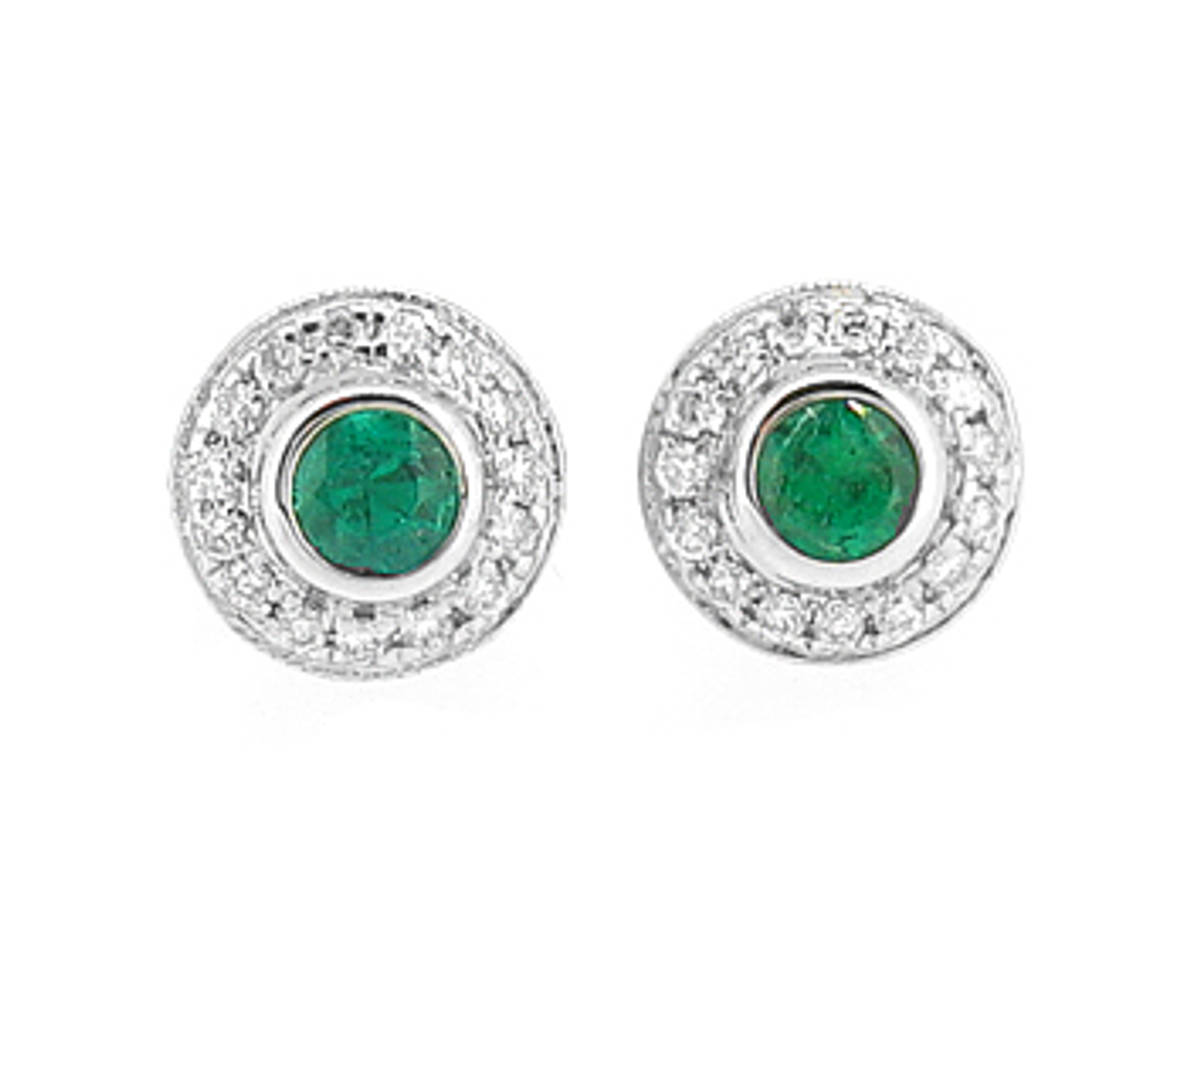 EMERALD AND DIAMOND CLUSTER EARRINGSAvailable in: 18k white gold, 18k yellow gold, or platinumPictured item: in 18k white goldEmerald: 0.24ctDiamond: 0.16ct